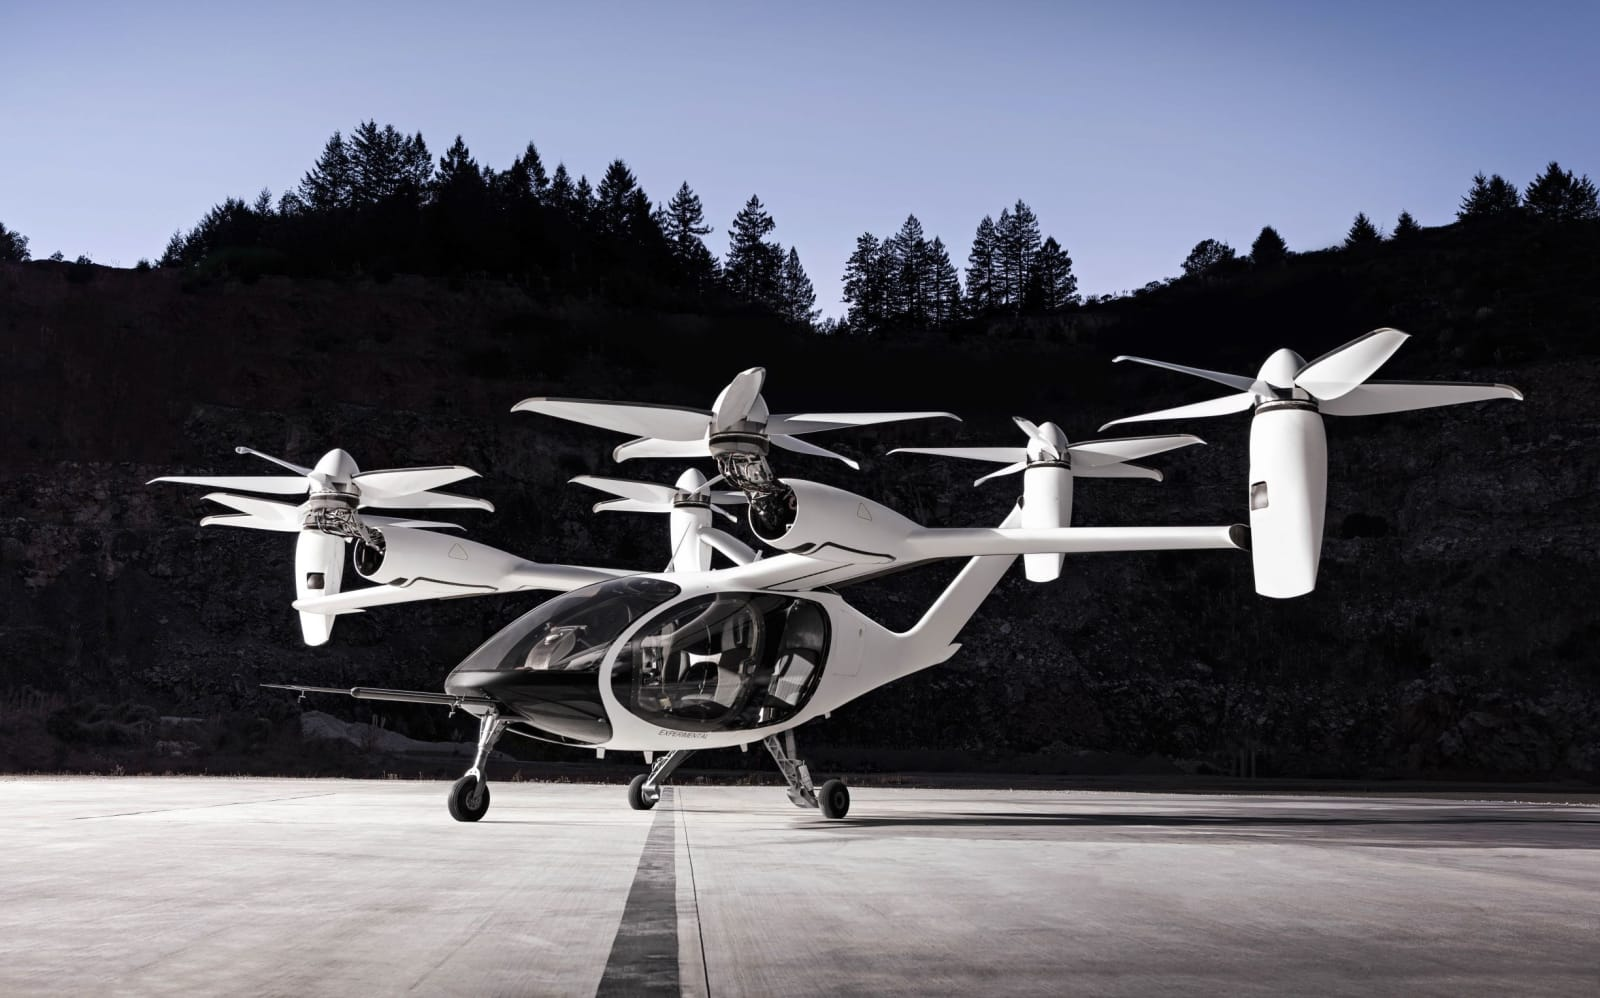 Toyota invests $349 million in flying taxi startup Joby Aviation